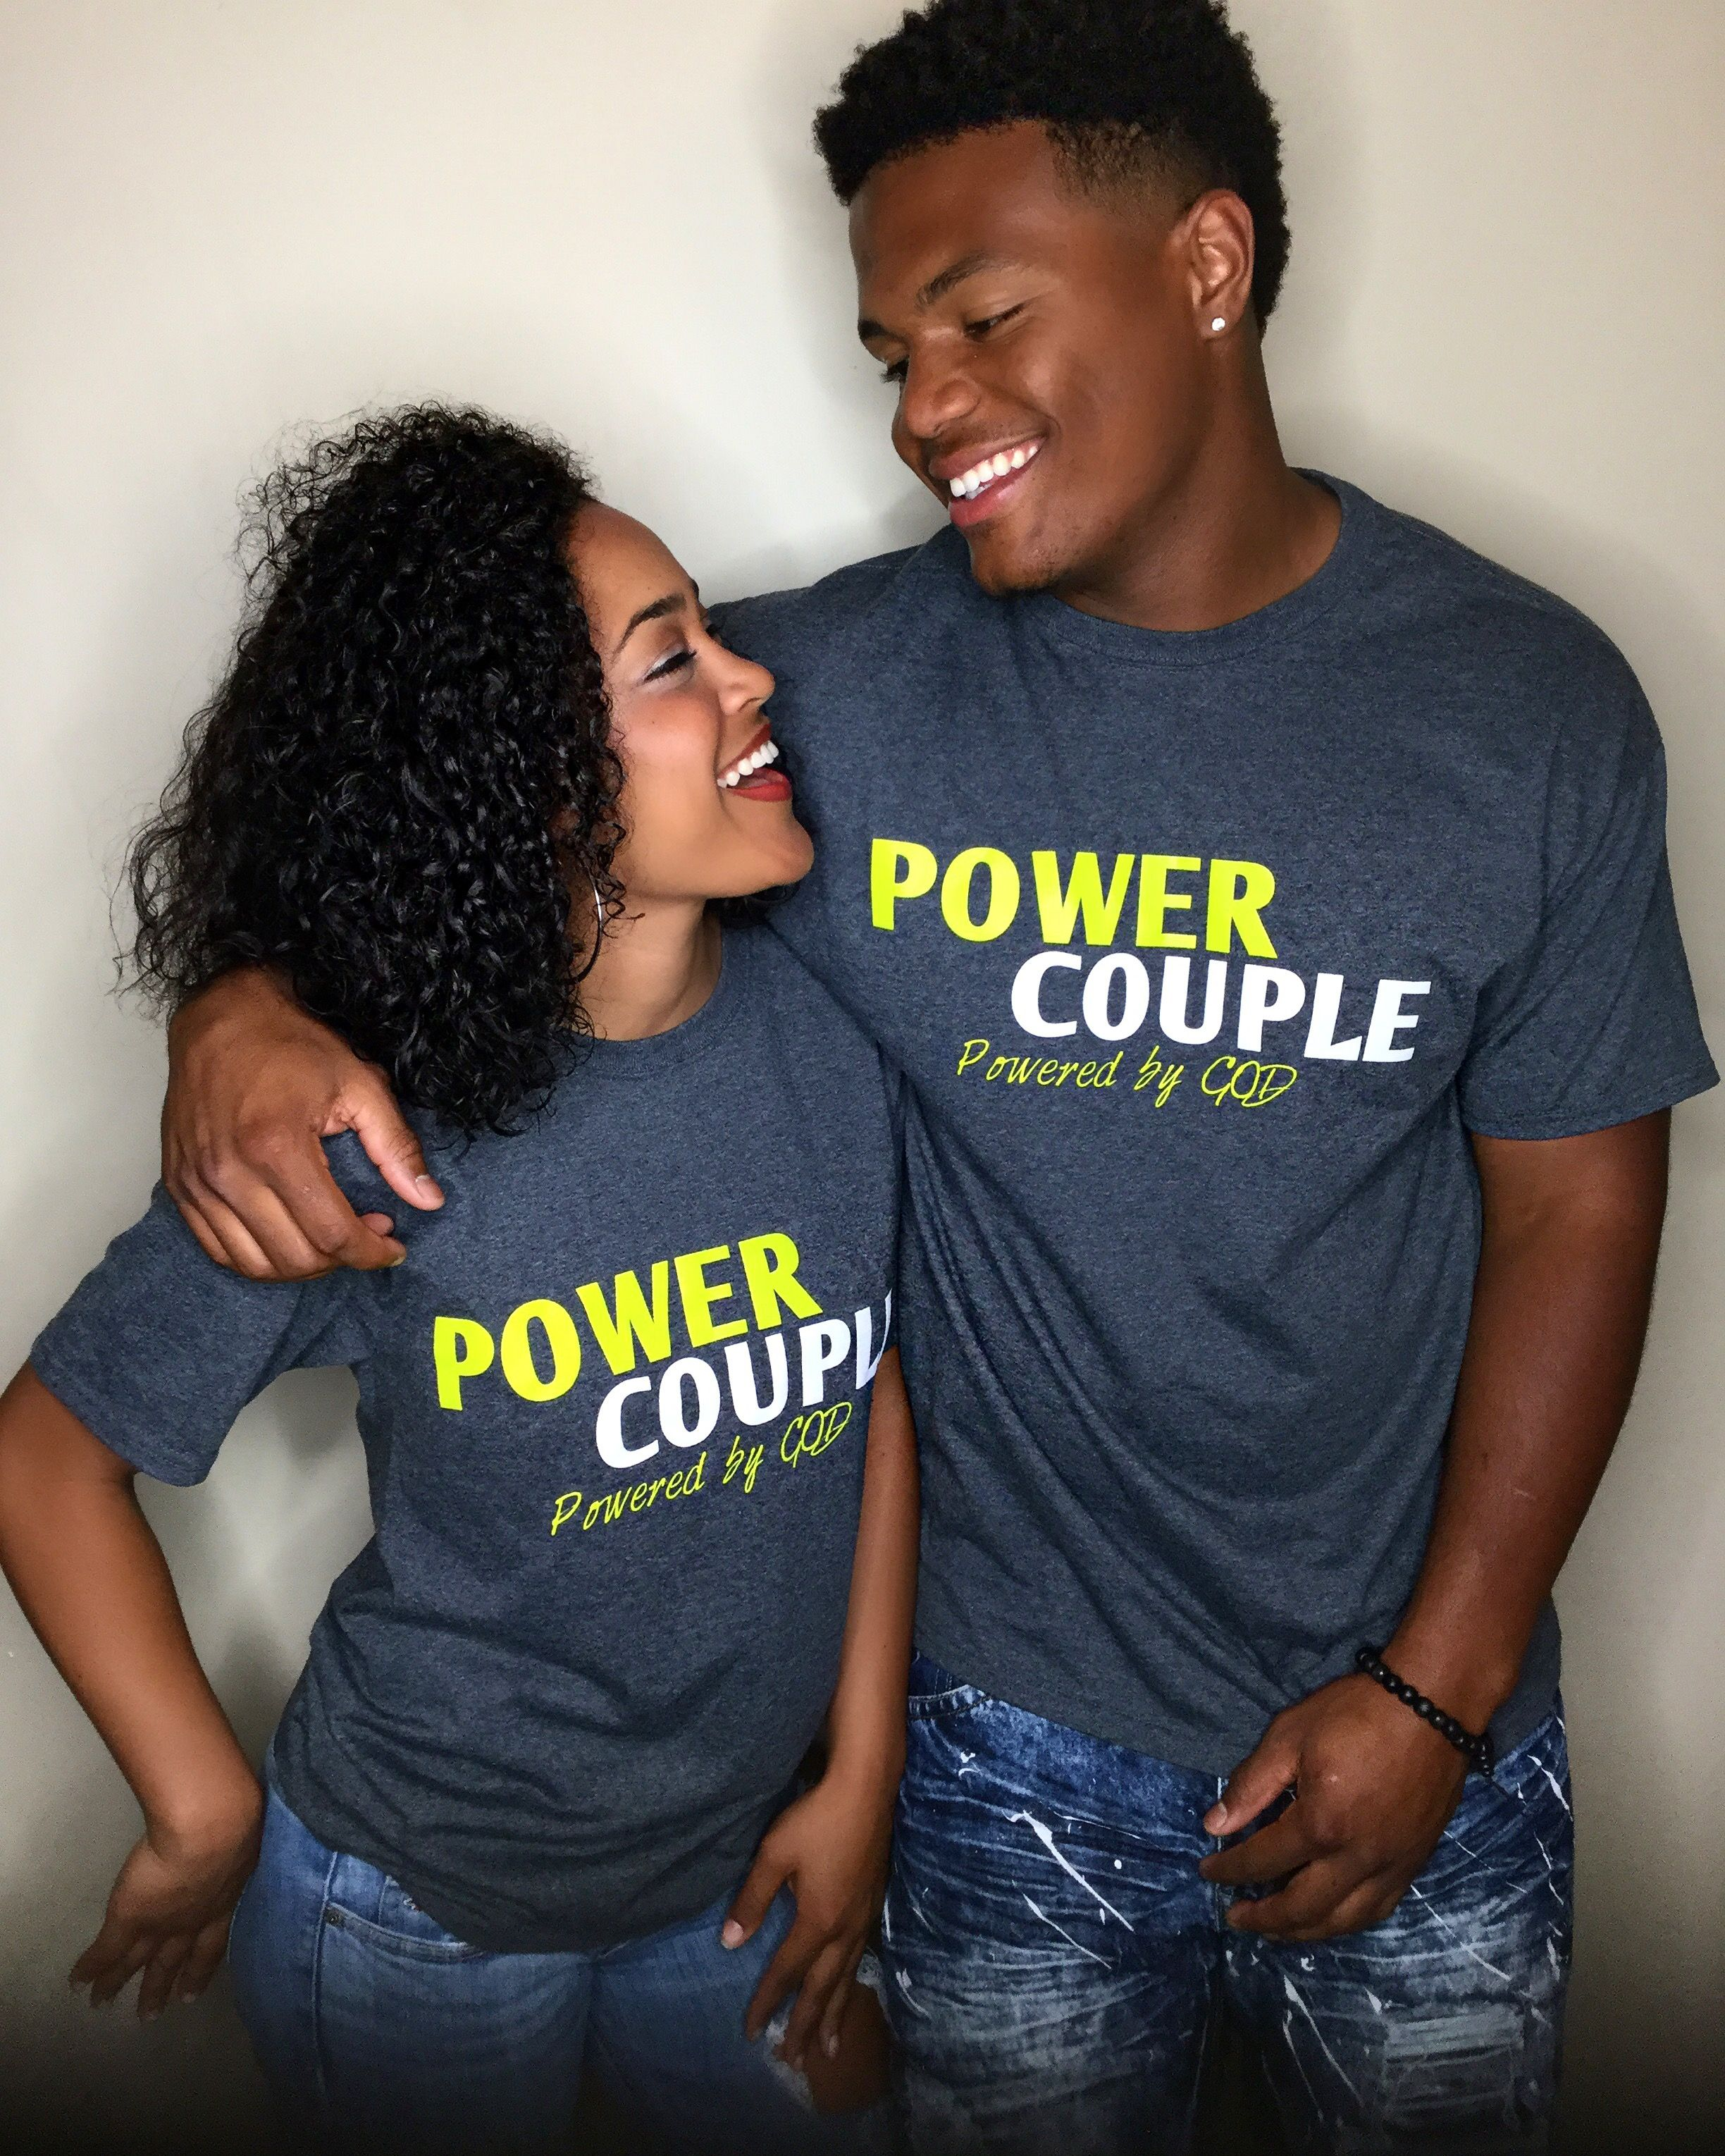 d3e9e4cb080e7 Power Couple t shirts www.PowerCoupleClothing.com | Christian ...